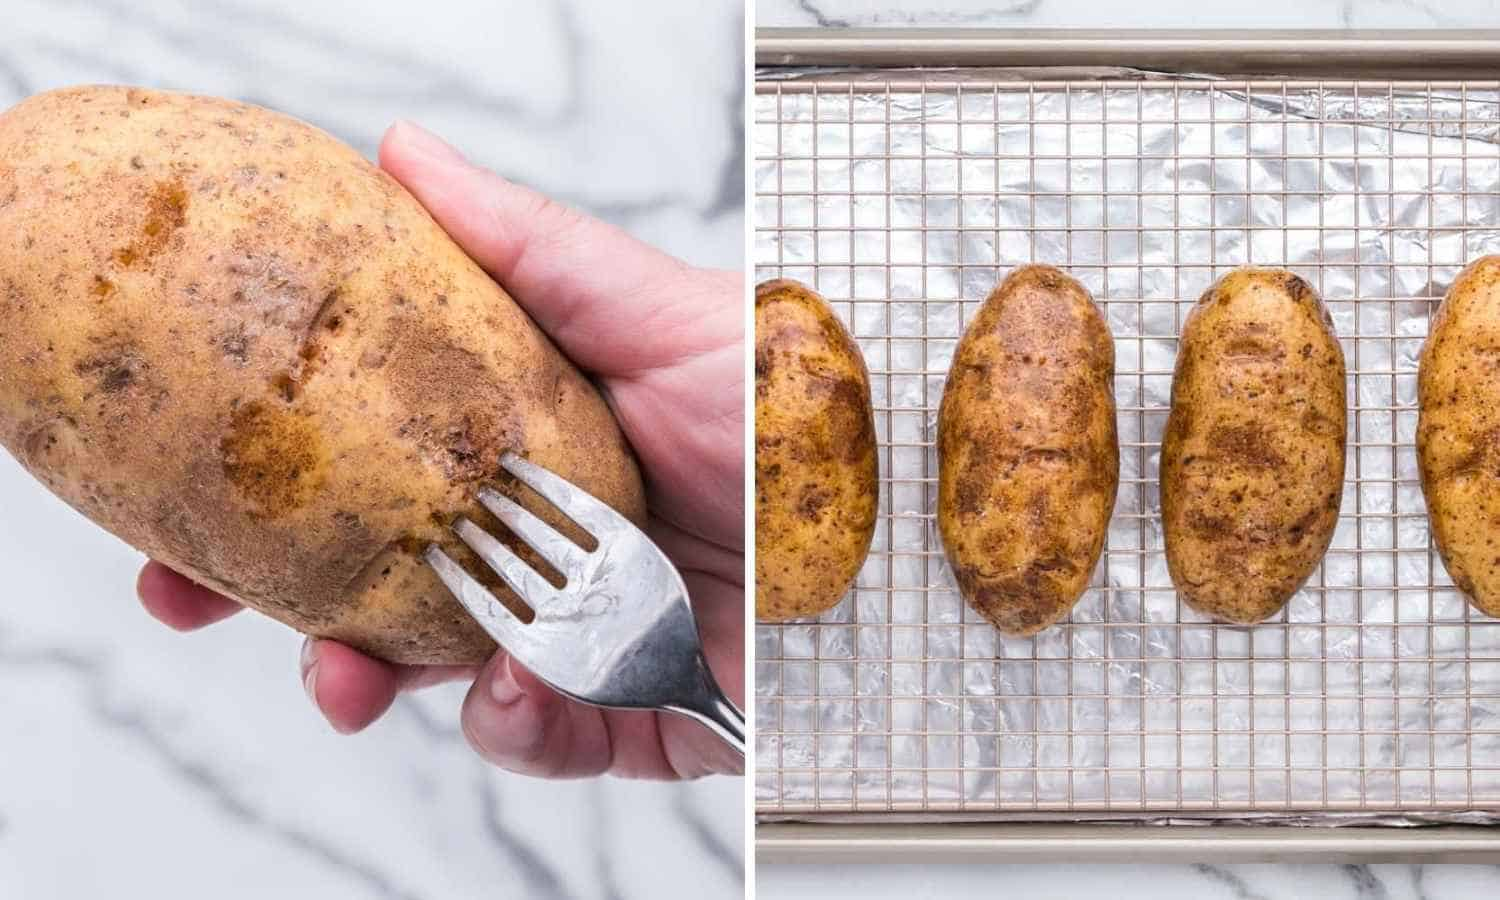 Two images showing how to pierce potatoes, and bake them.